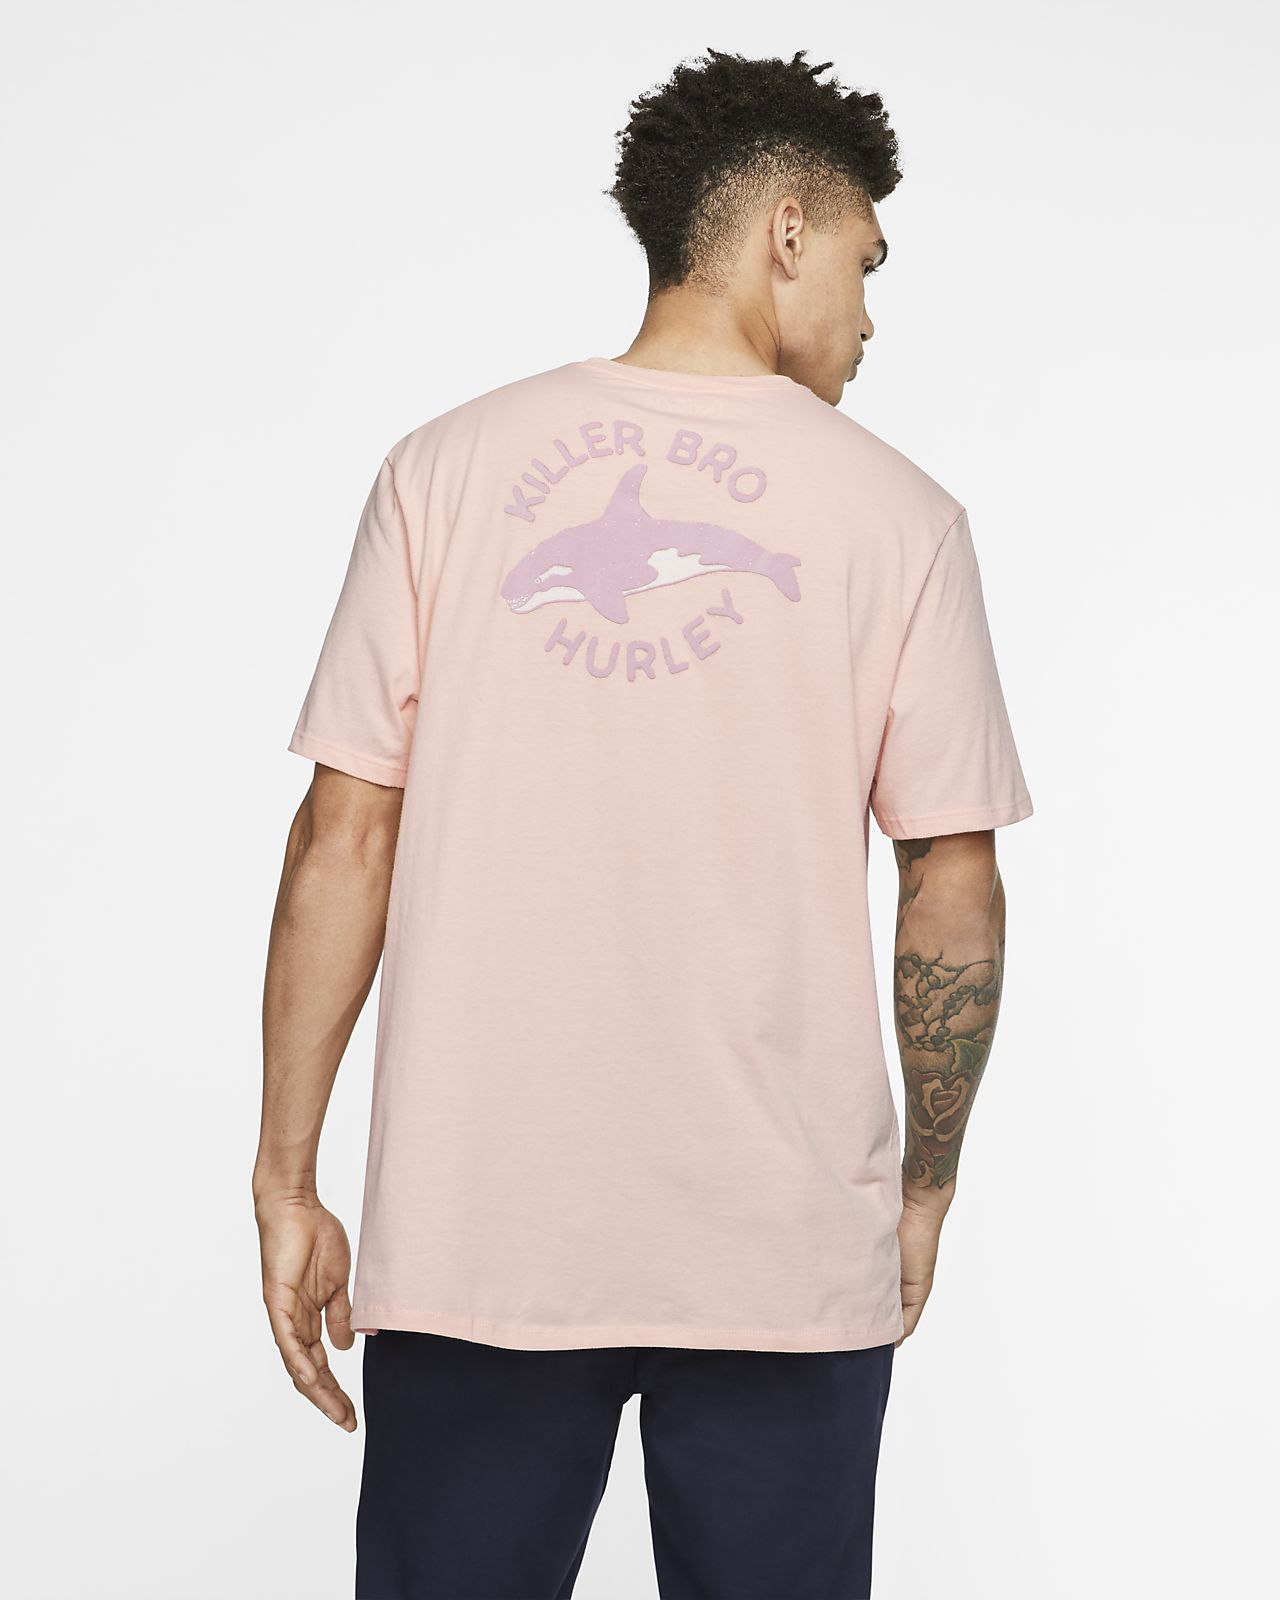 Hurley Premium Killer Bro Pocket Men's Premium Fit T-Shirt